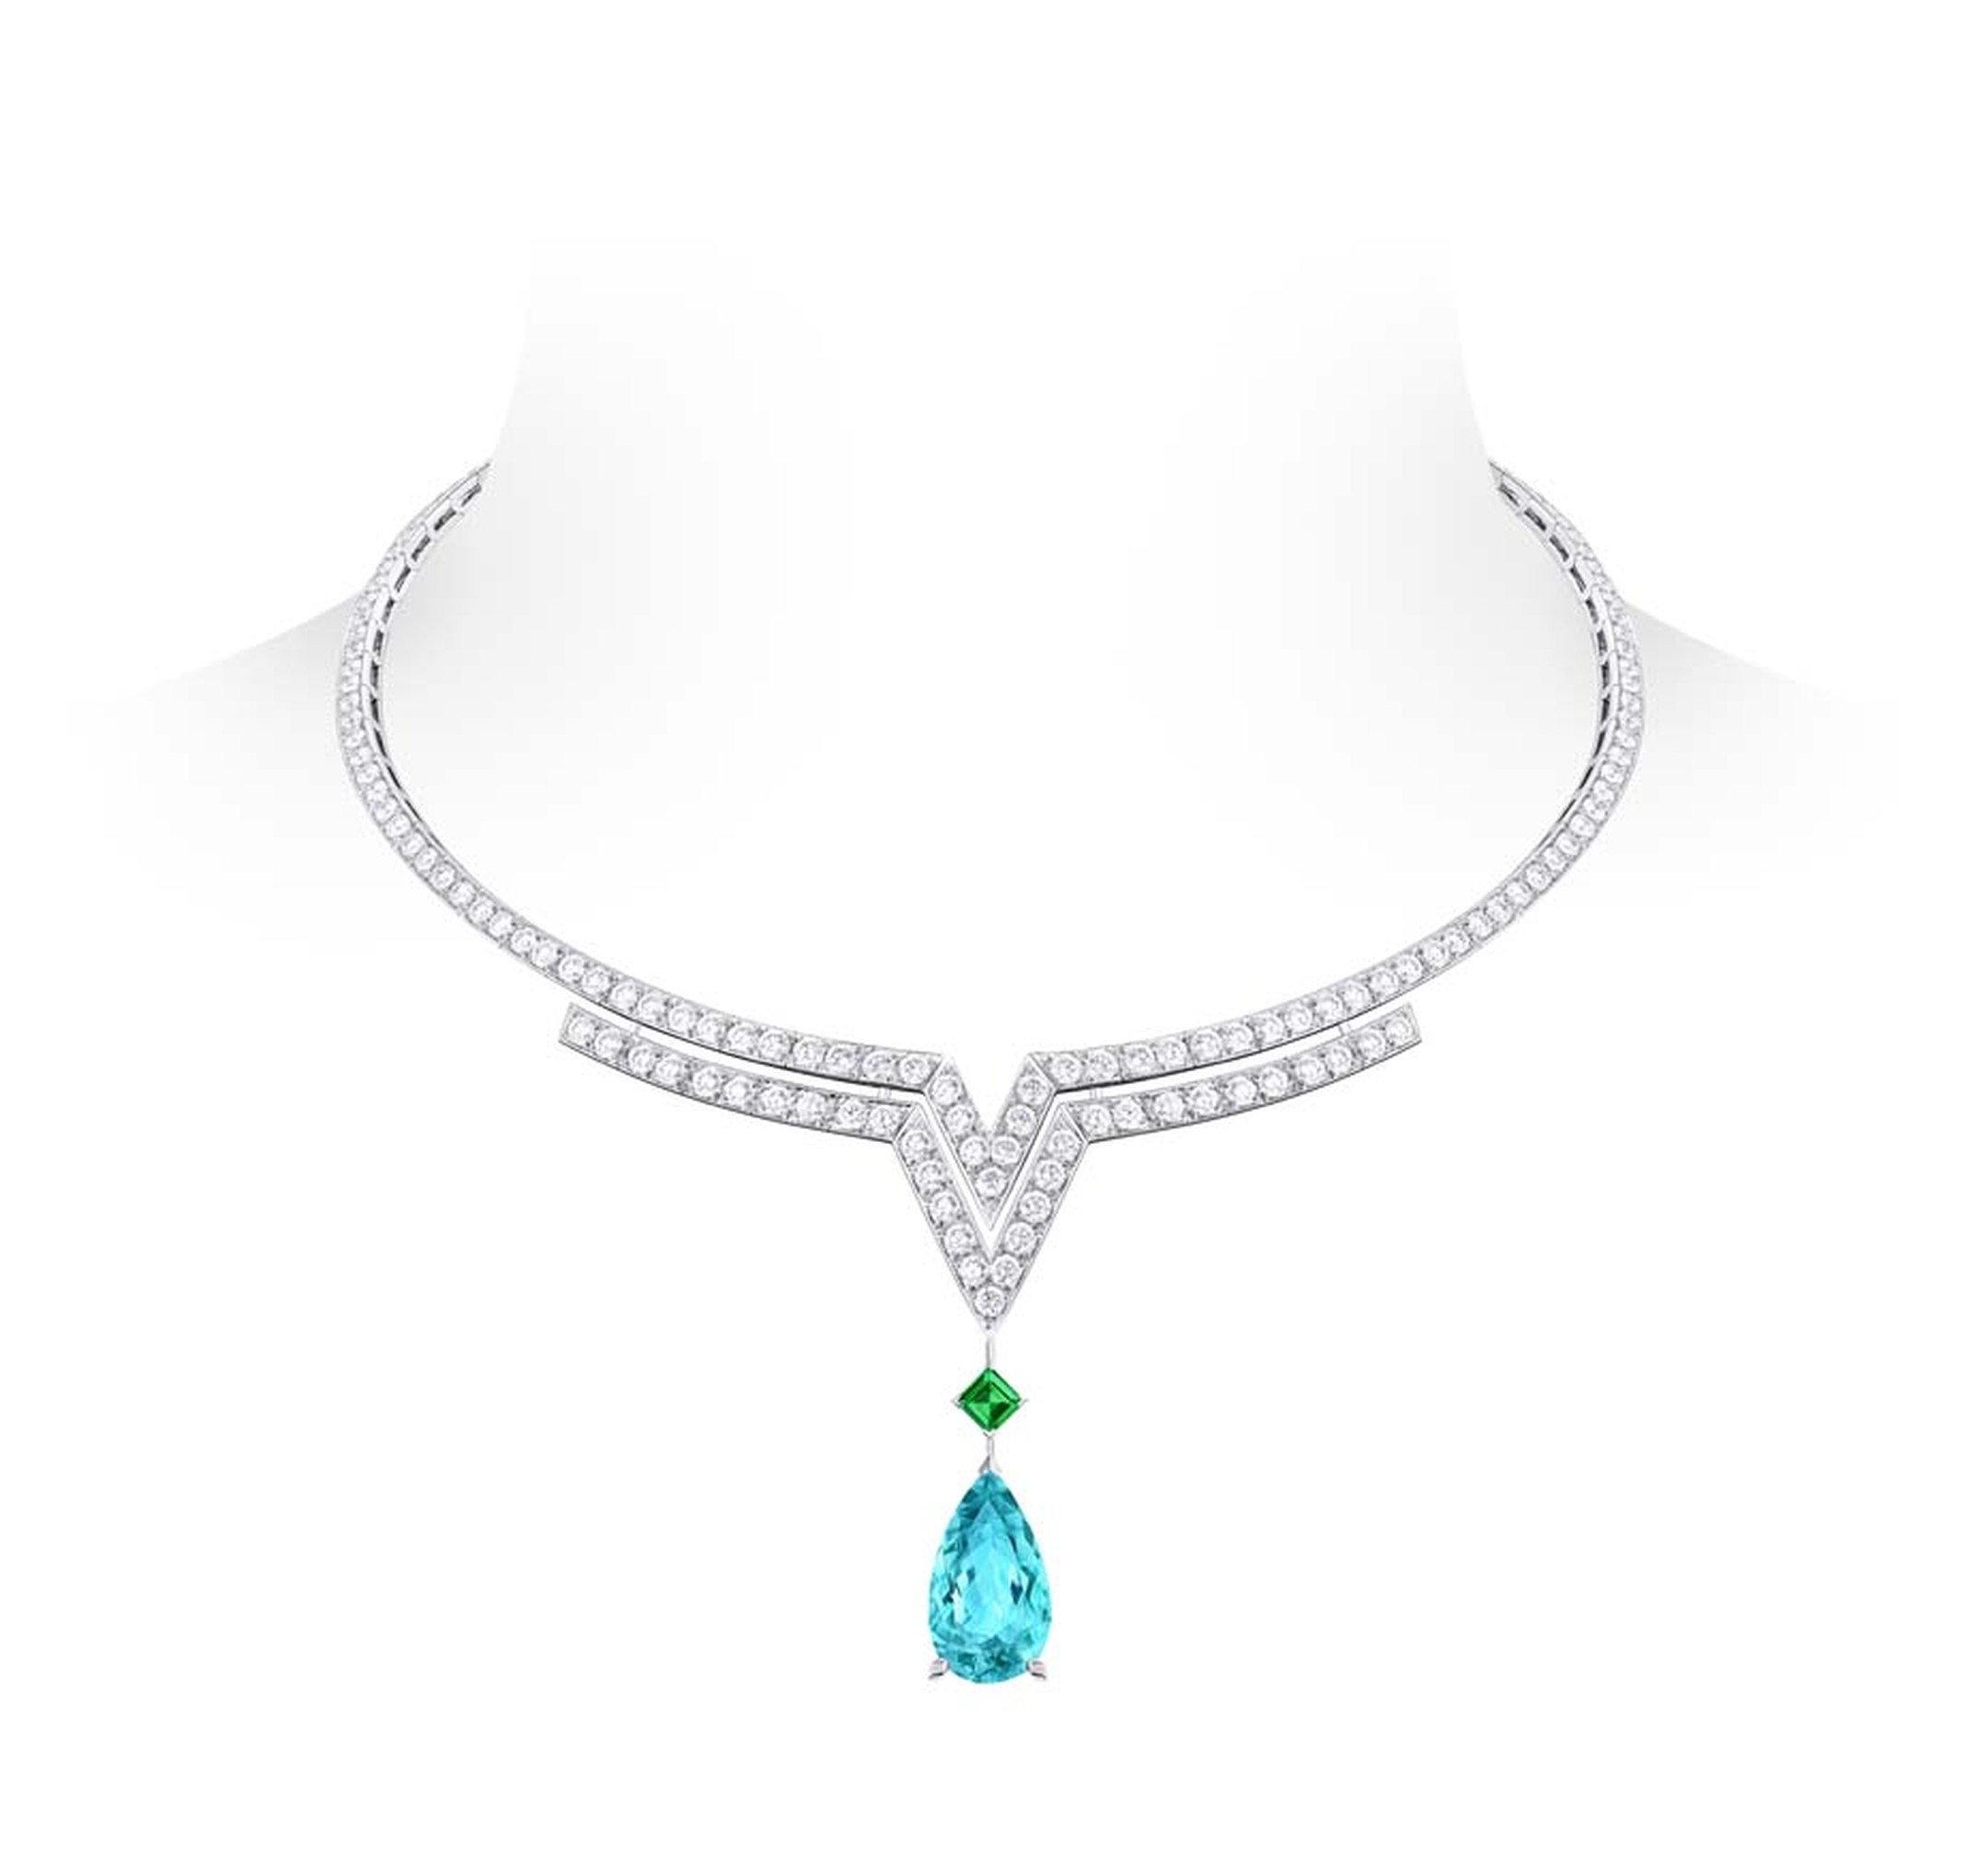 Louis Vuitton Acte V Apotheosis necklace featuring diamonds, an emerald and a pear shaped tourmaline.